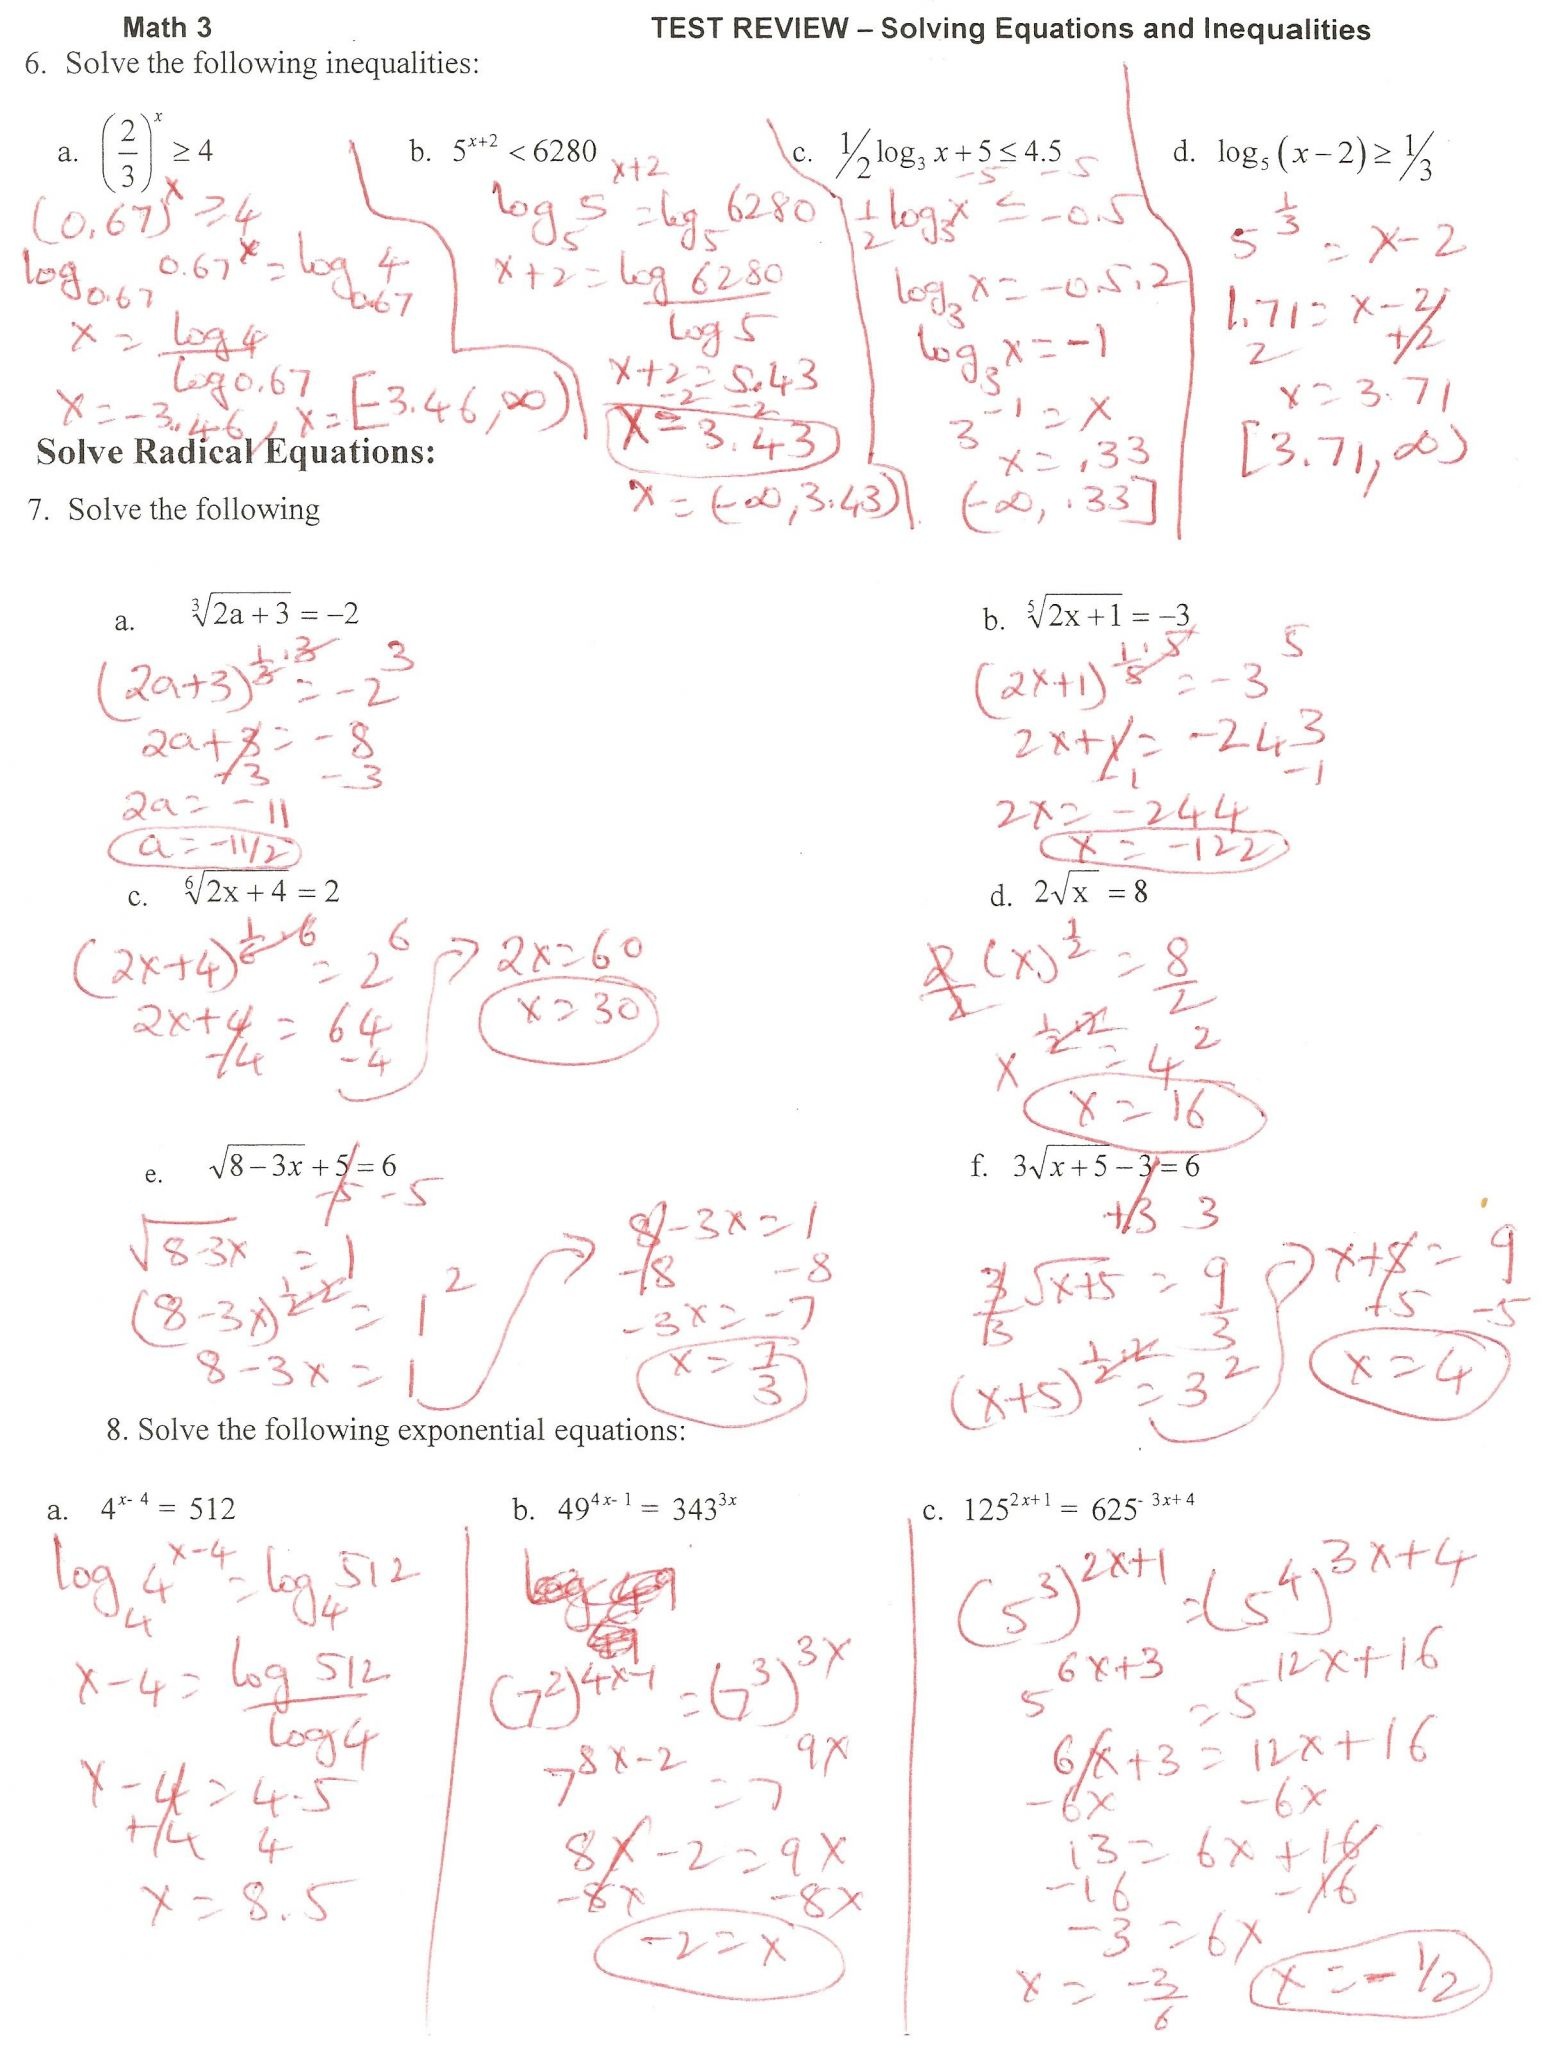 Solving Exponential Equations Worksheet With Answers